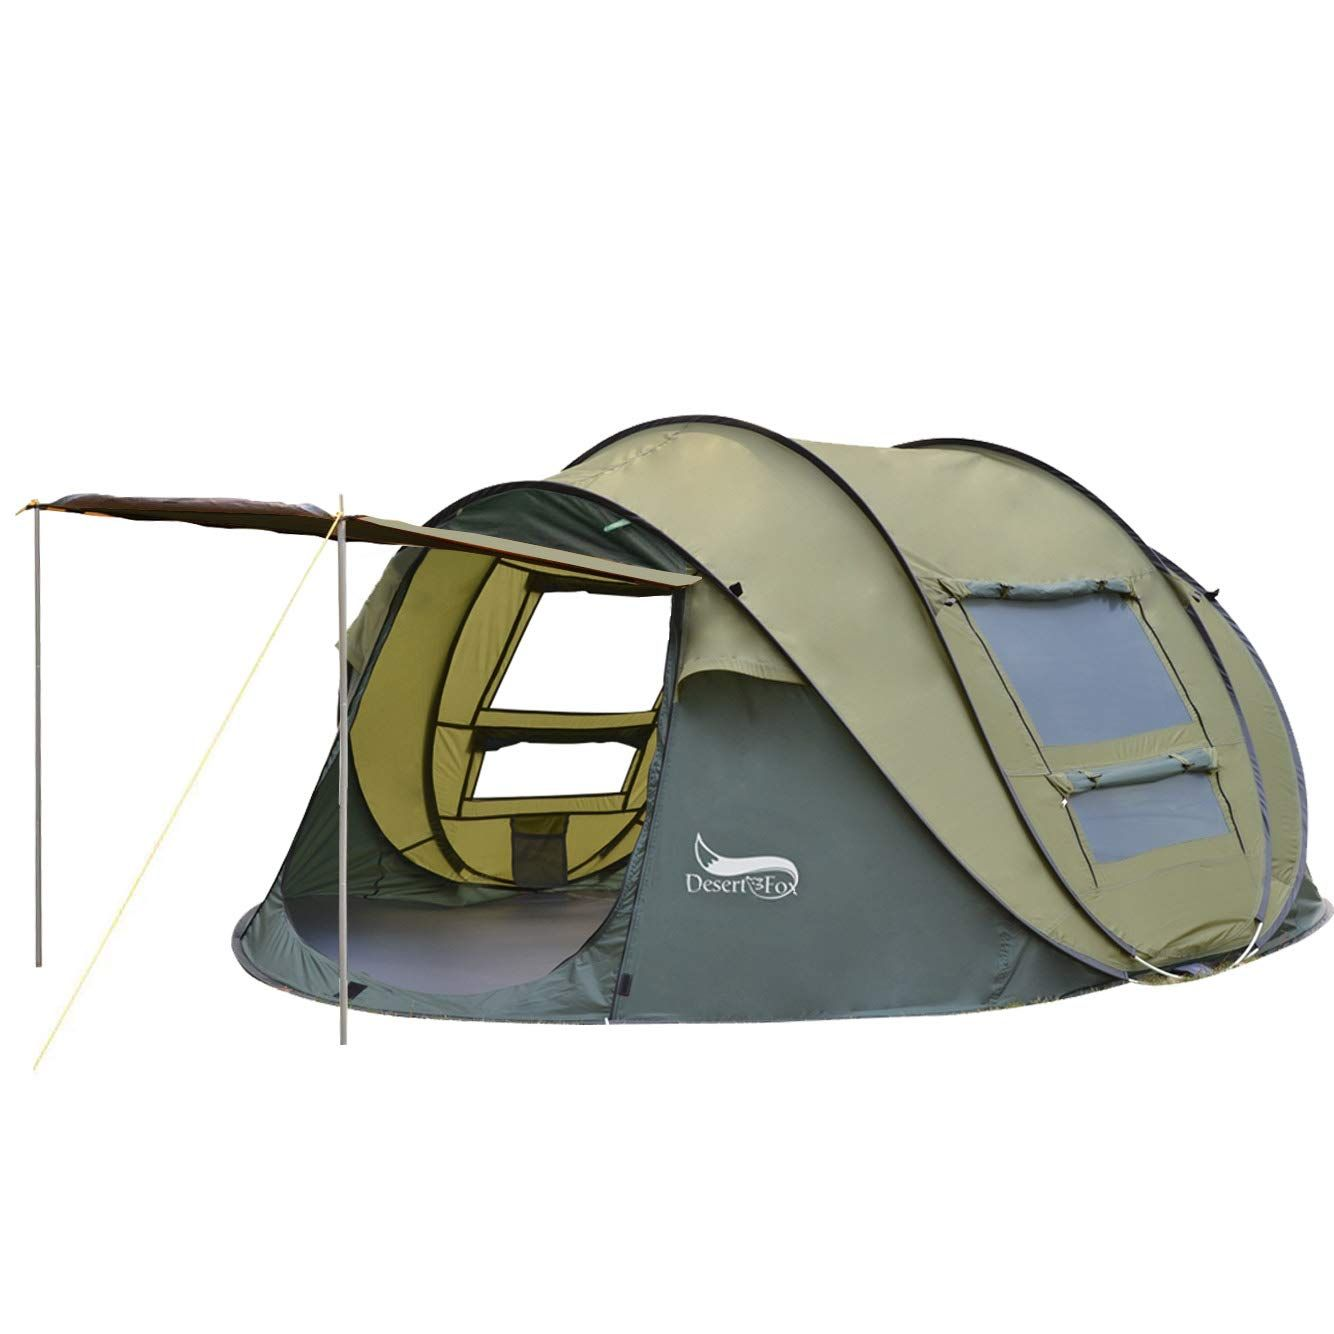 Desert And Fox 3 4 Person Pop Up Tent Automatic Instant Setup Family Tents Sun Shelter For Beach Camping Hiking To View Fur Tent Family Tent Pop Up Tent